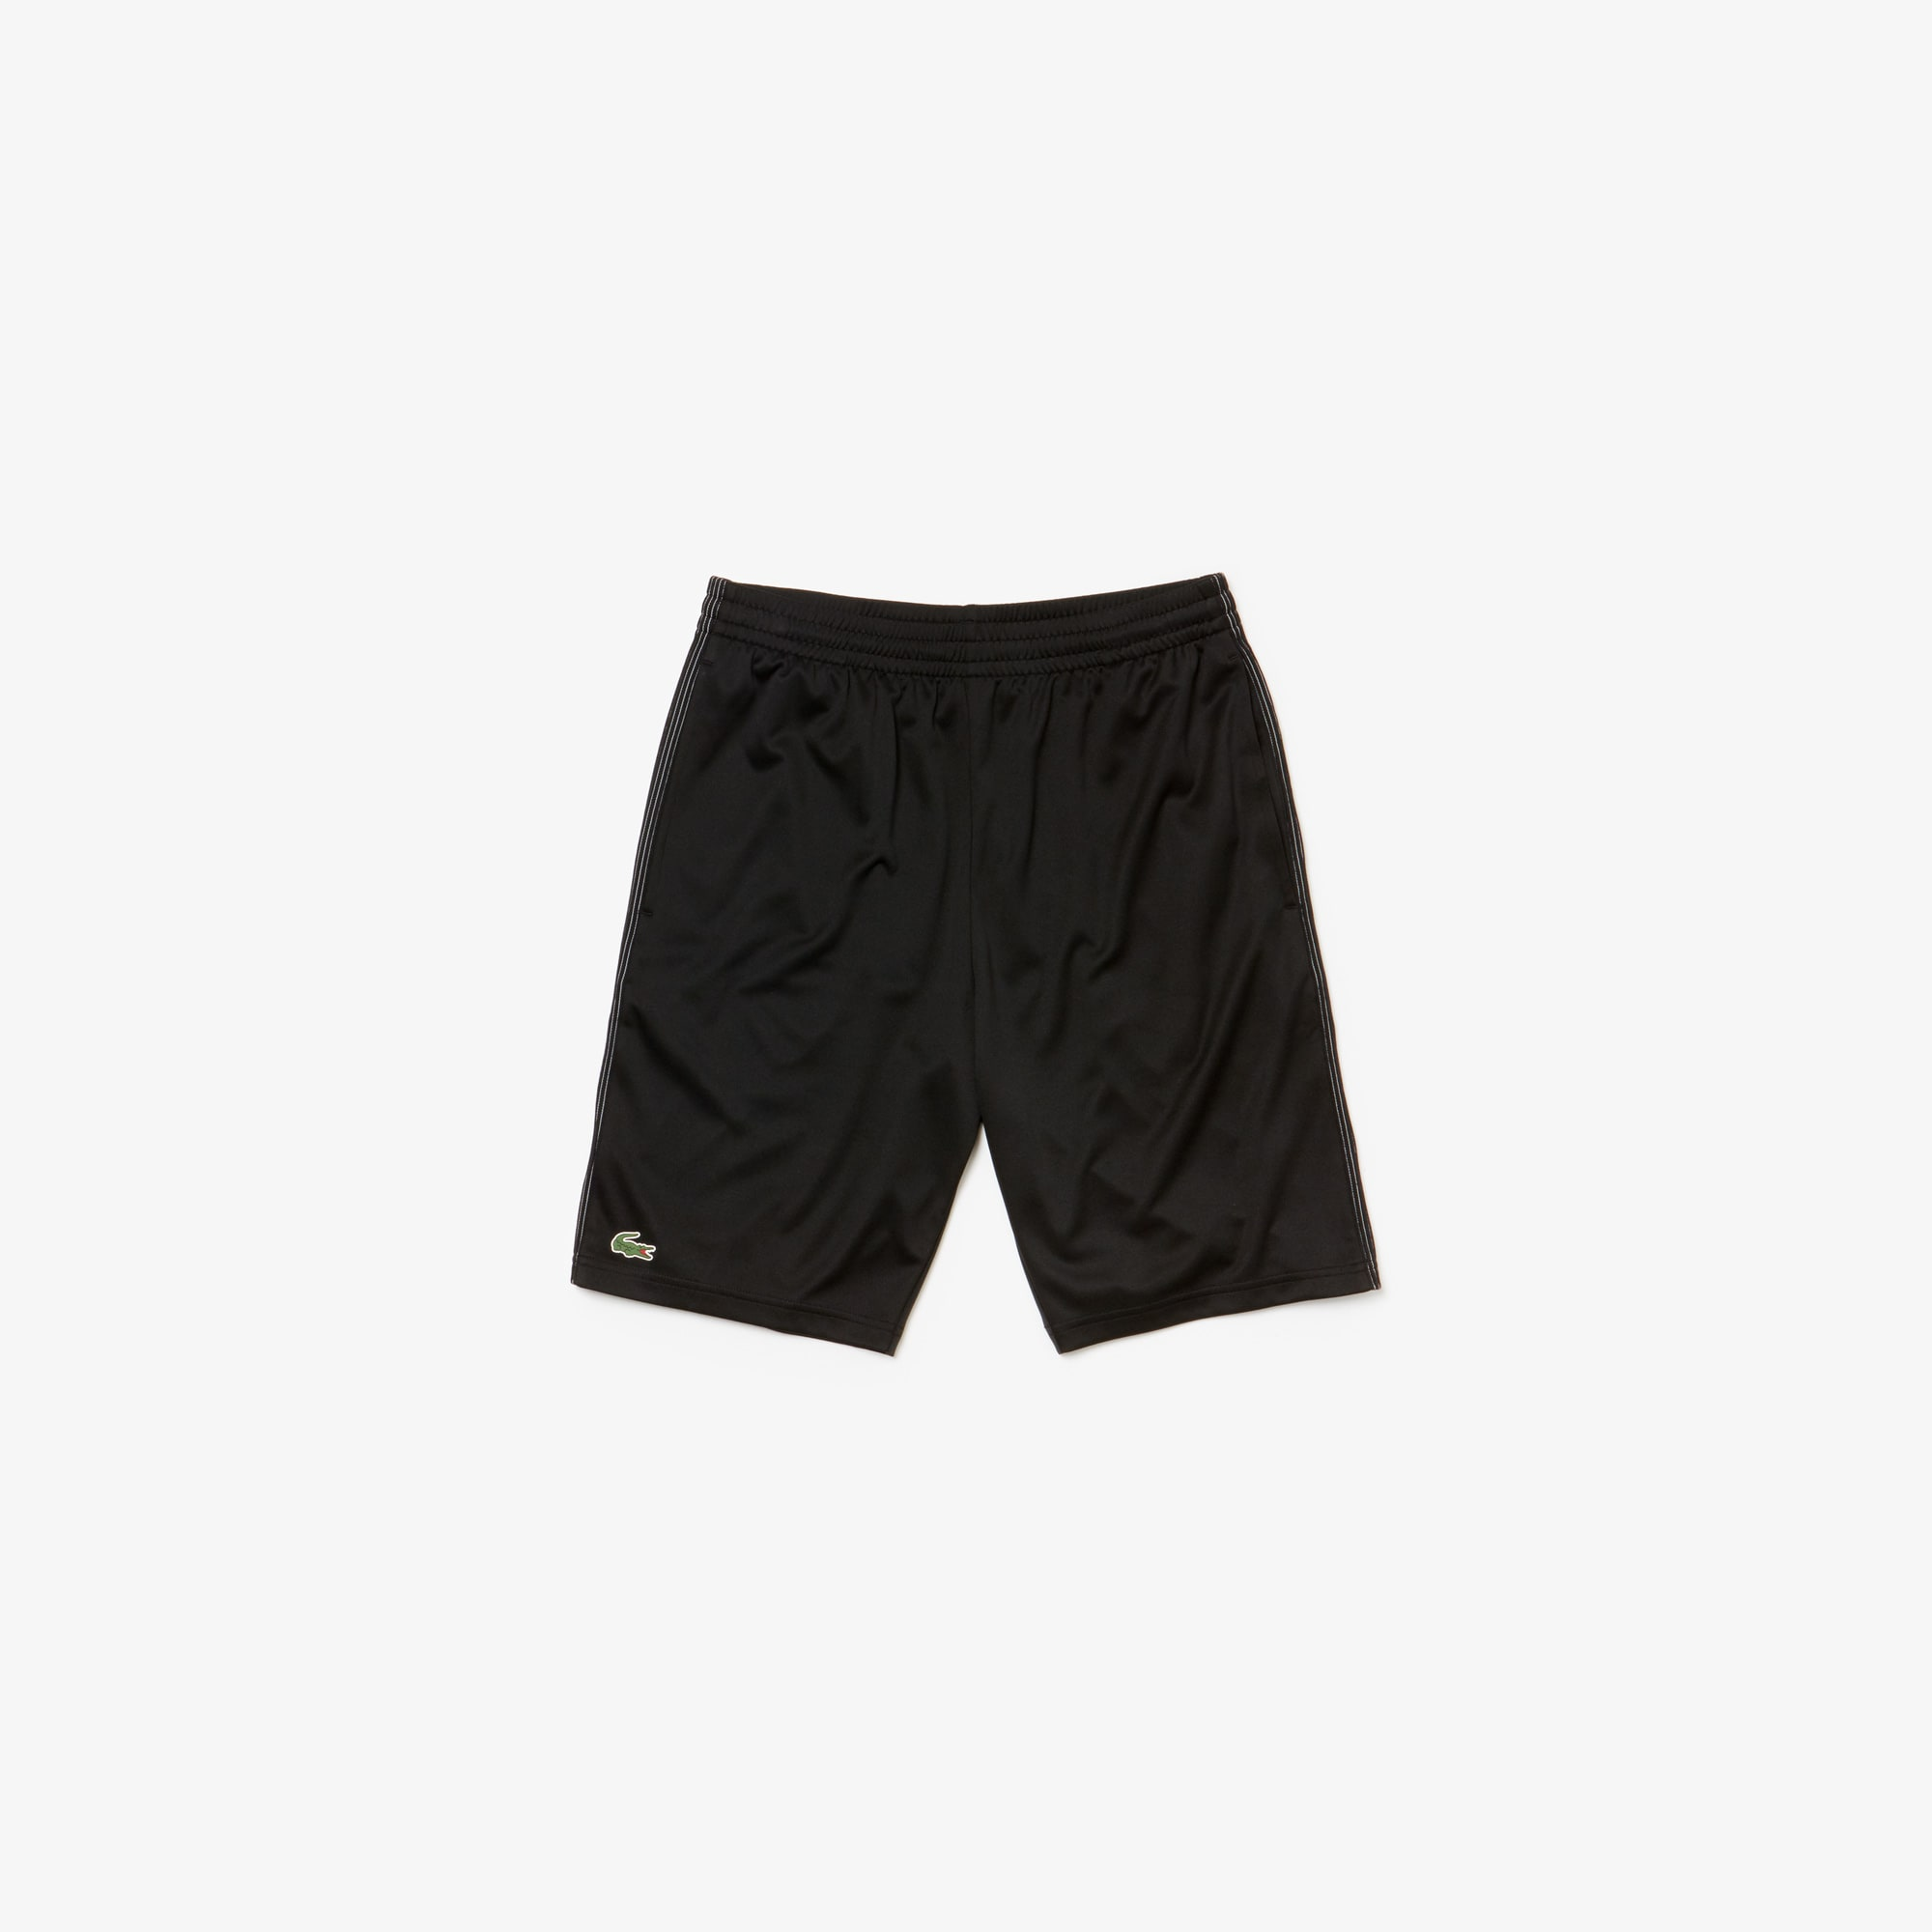 Men's SPORT Technical Piqué Shorts -  x Novak Djokovic Support With Style - Off Court Collection